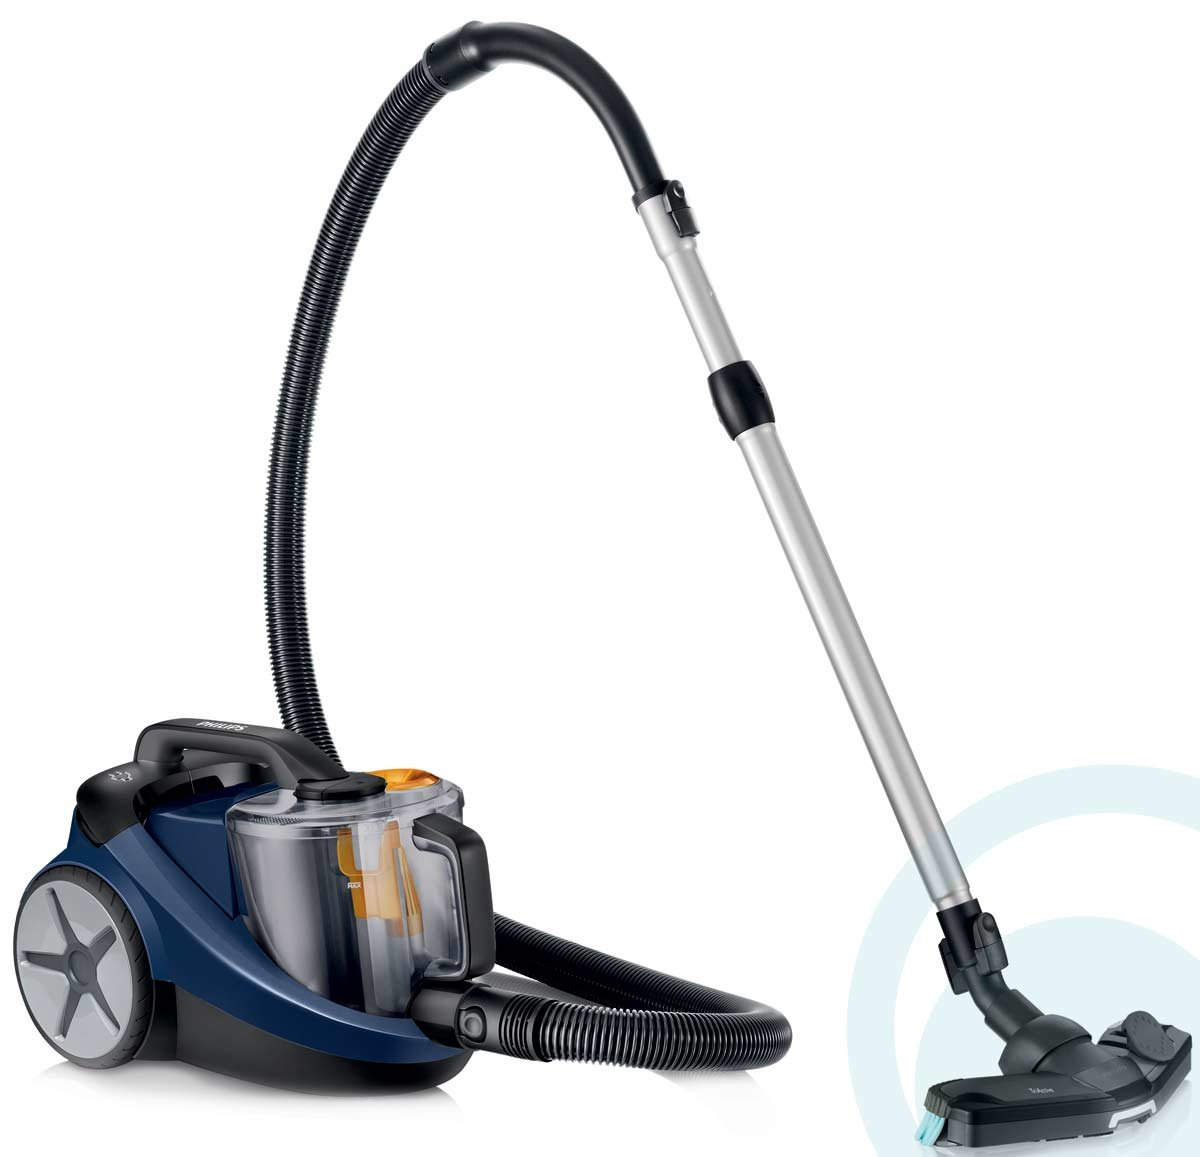 philips pressure washer user manual